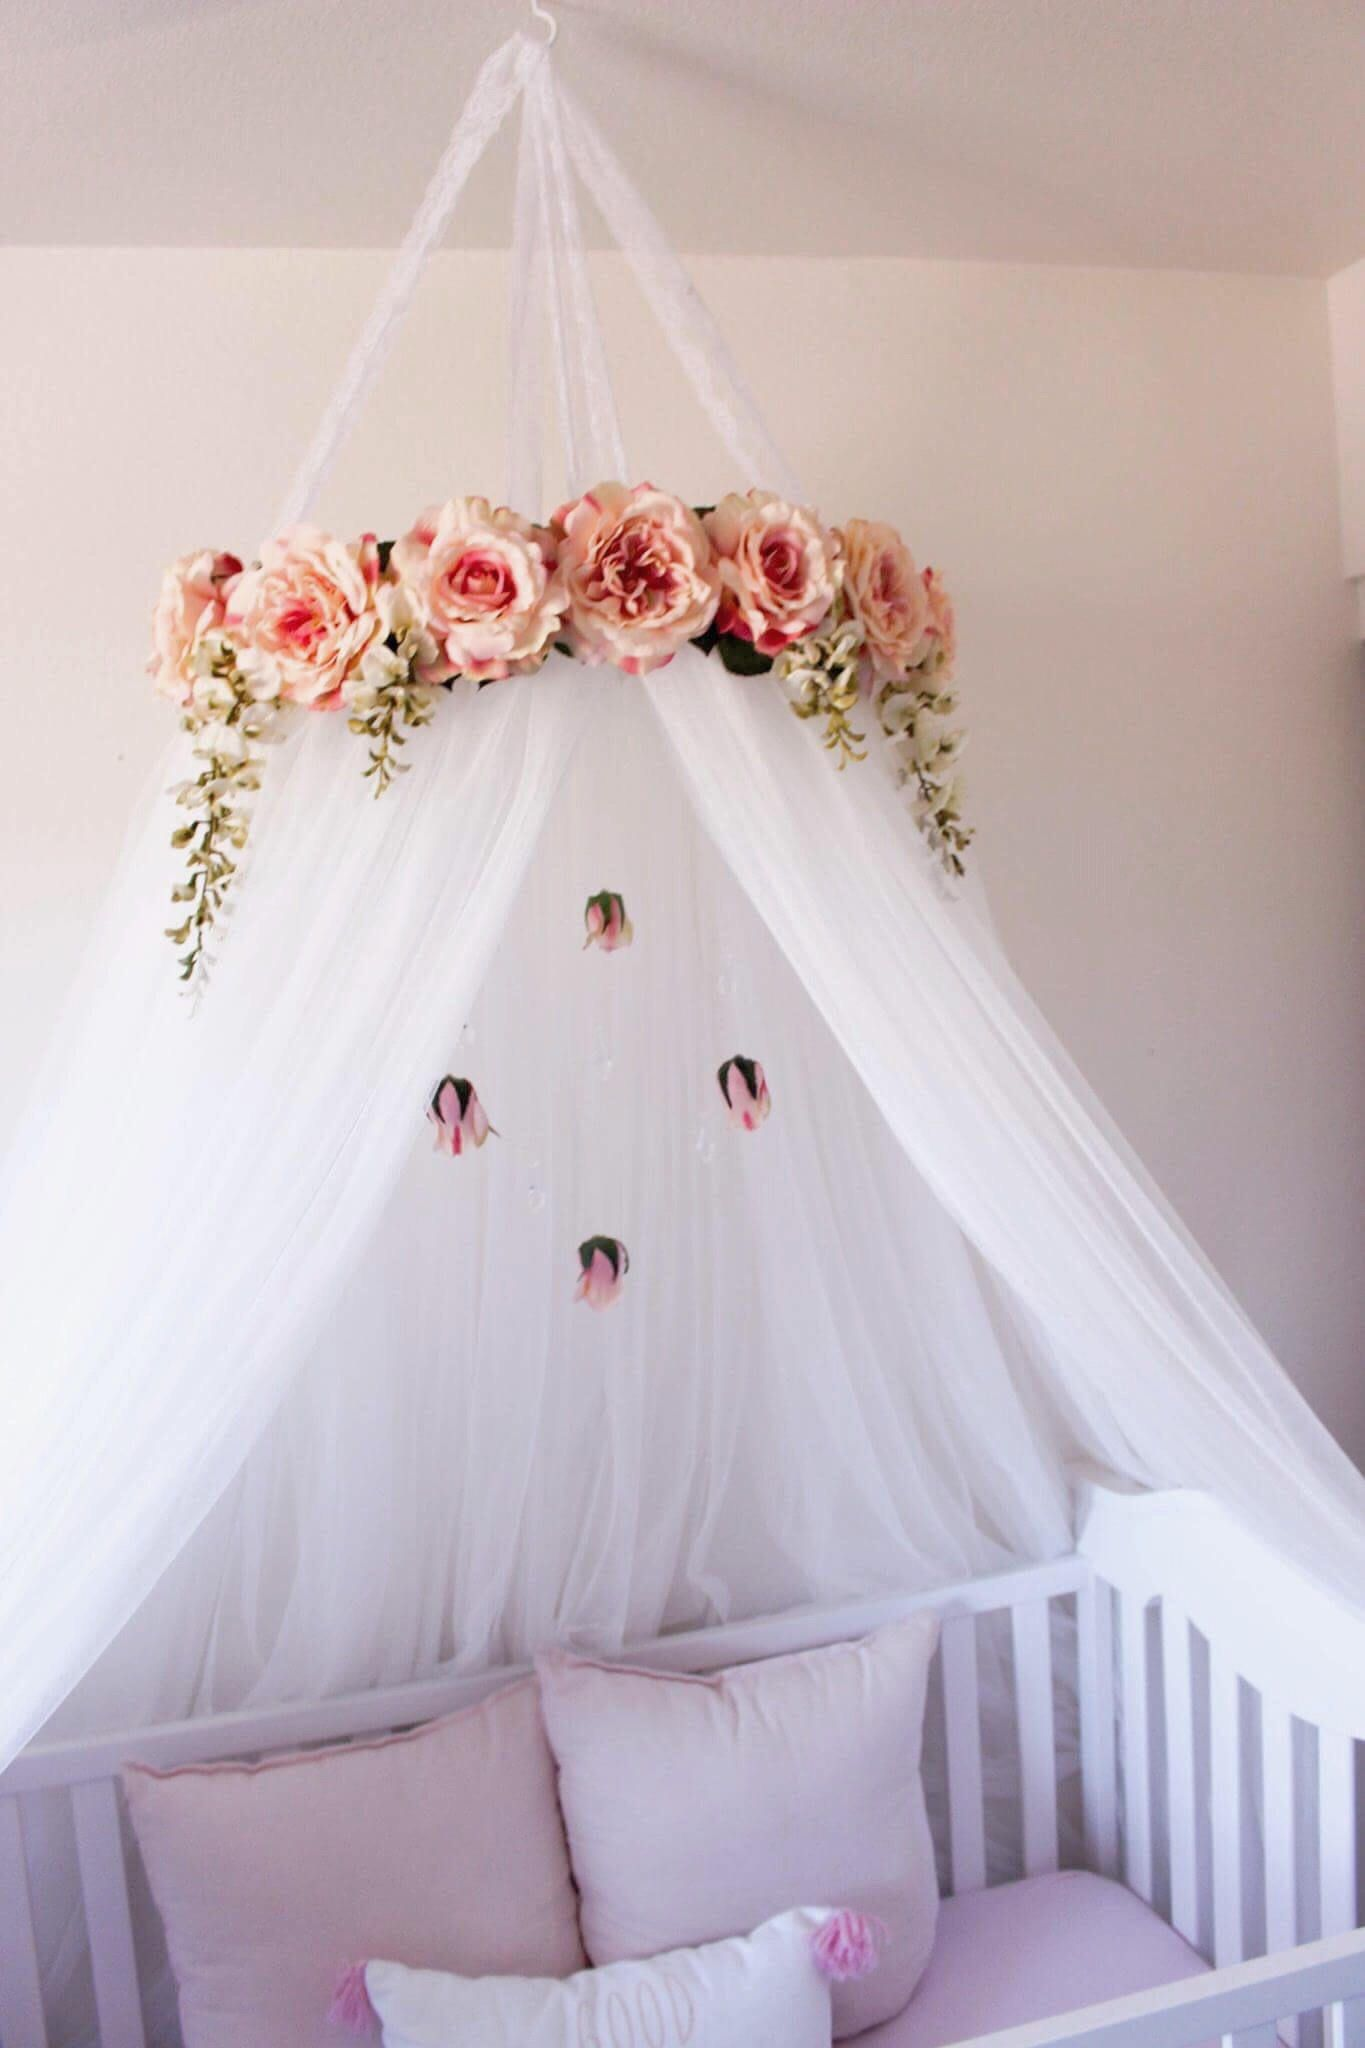 Serene Floral Pink And White Flower Crib Or Bed Canopy Crown Baby Girl Nursery Room Crib Canopy Girl Nursery Room